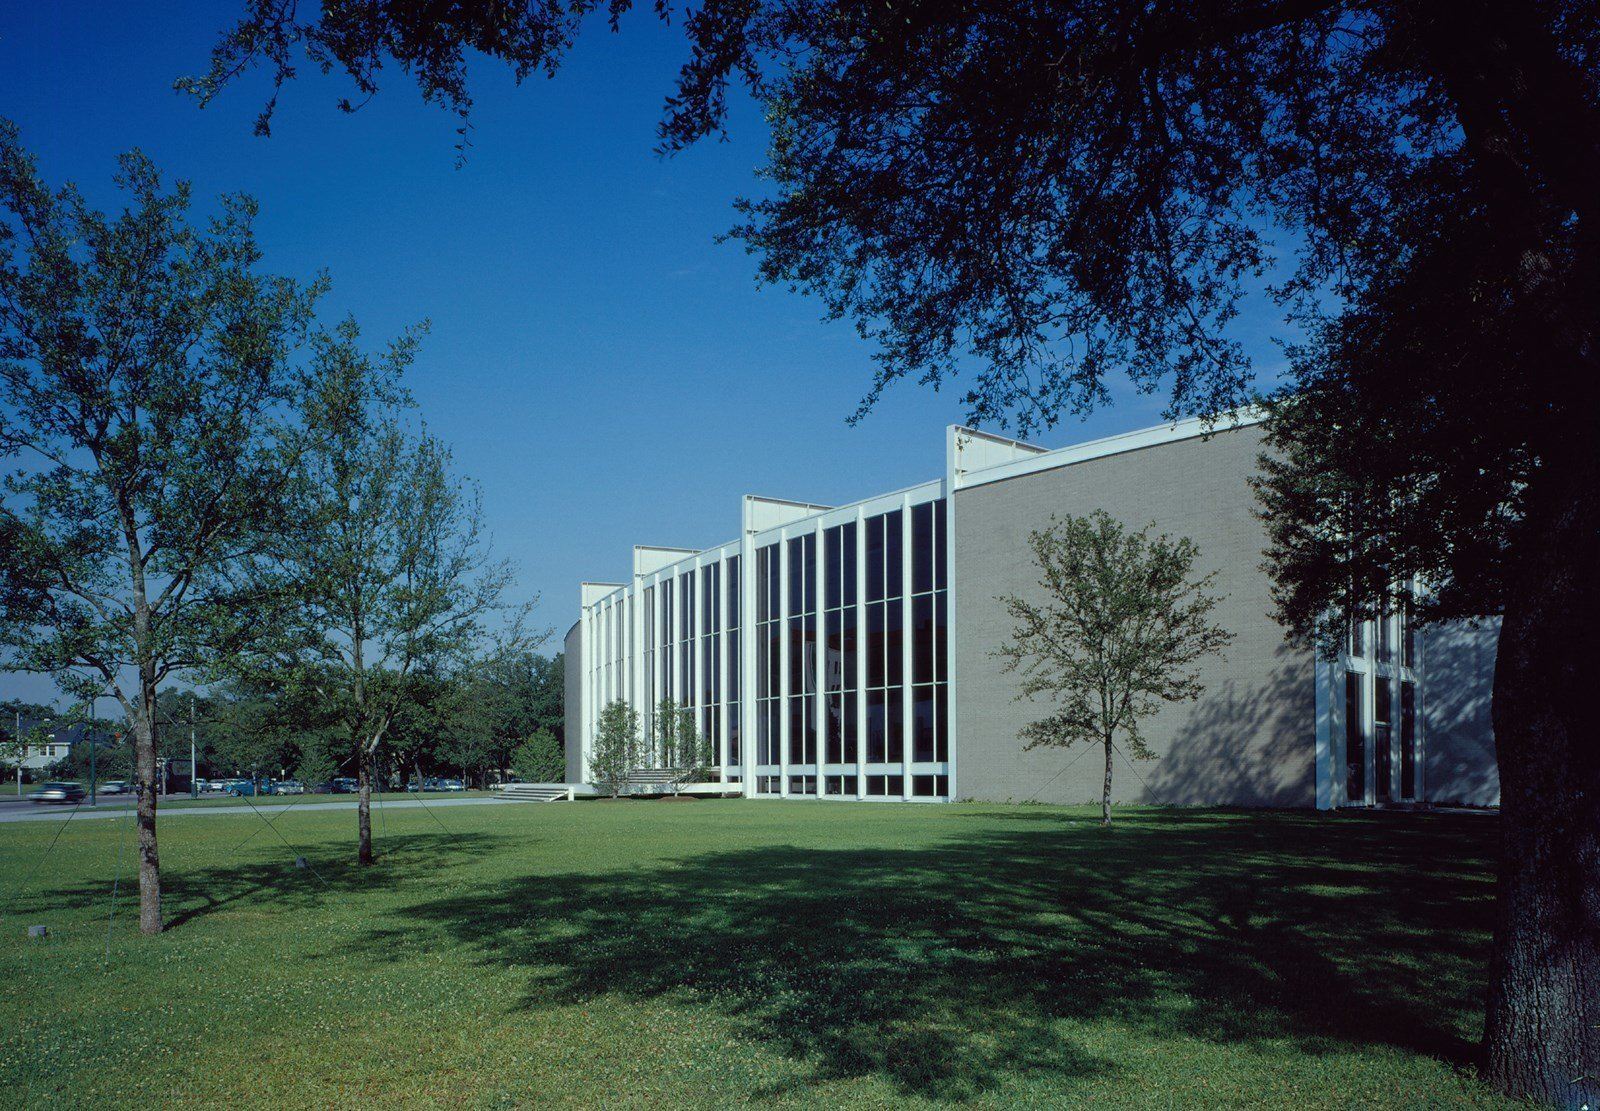 Houston's Museum of Fine Arts addition by Ludwig Mies van der Rohe with glass, steel and concrete exteriors